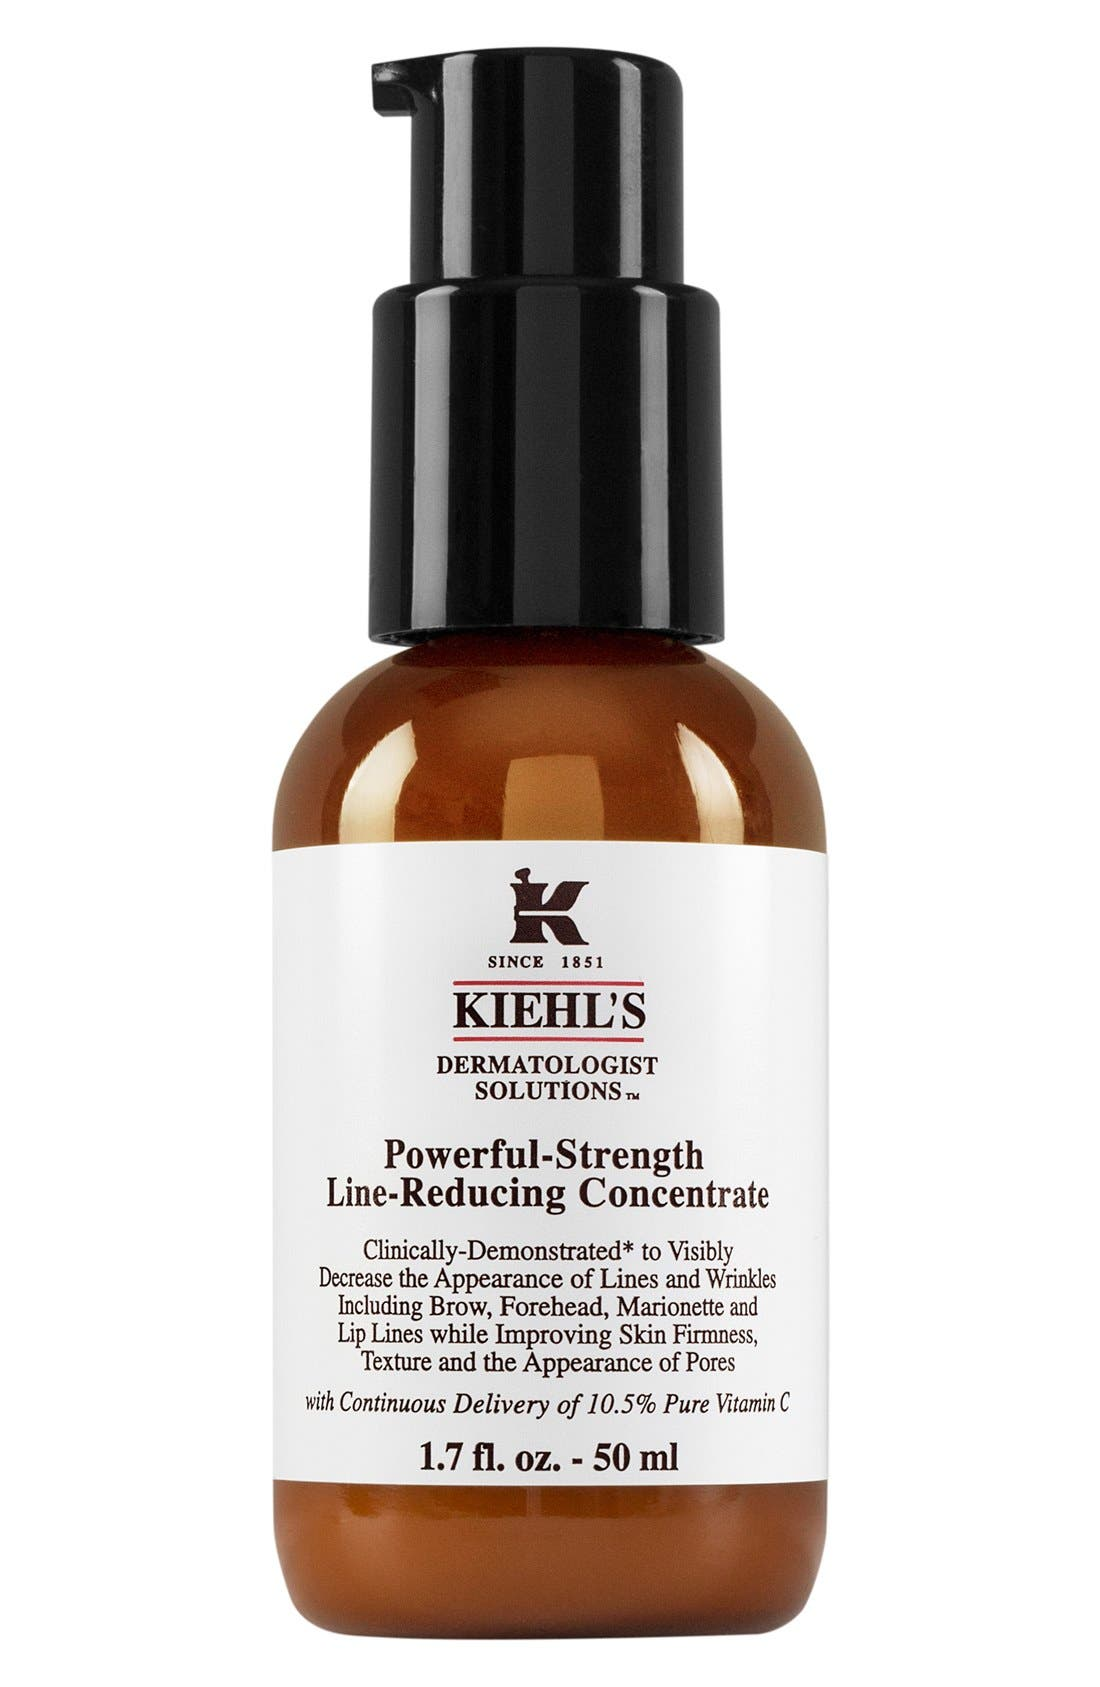 'Powerful-Strength' Line-Reducing Concentrate,                             Main thumbnail 1, color,                             000